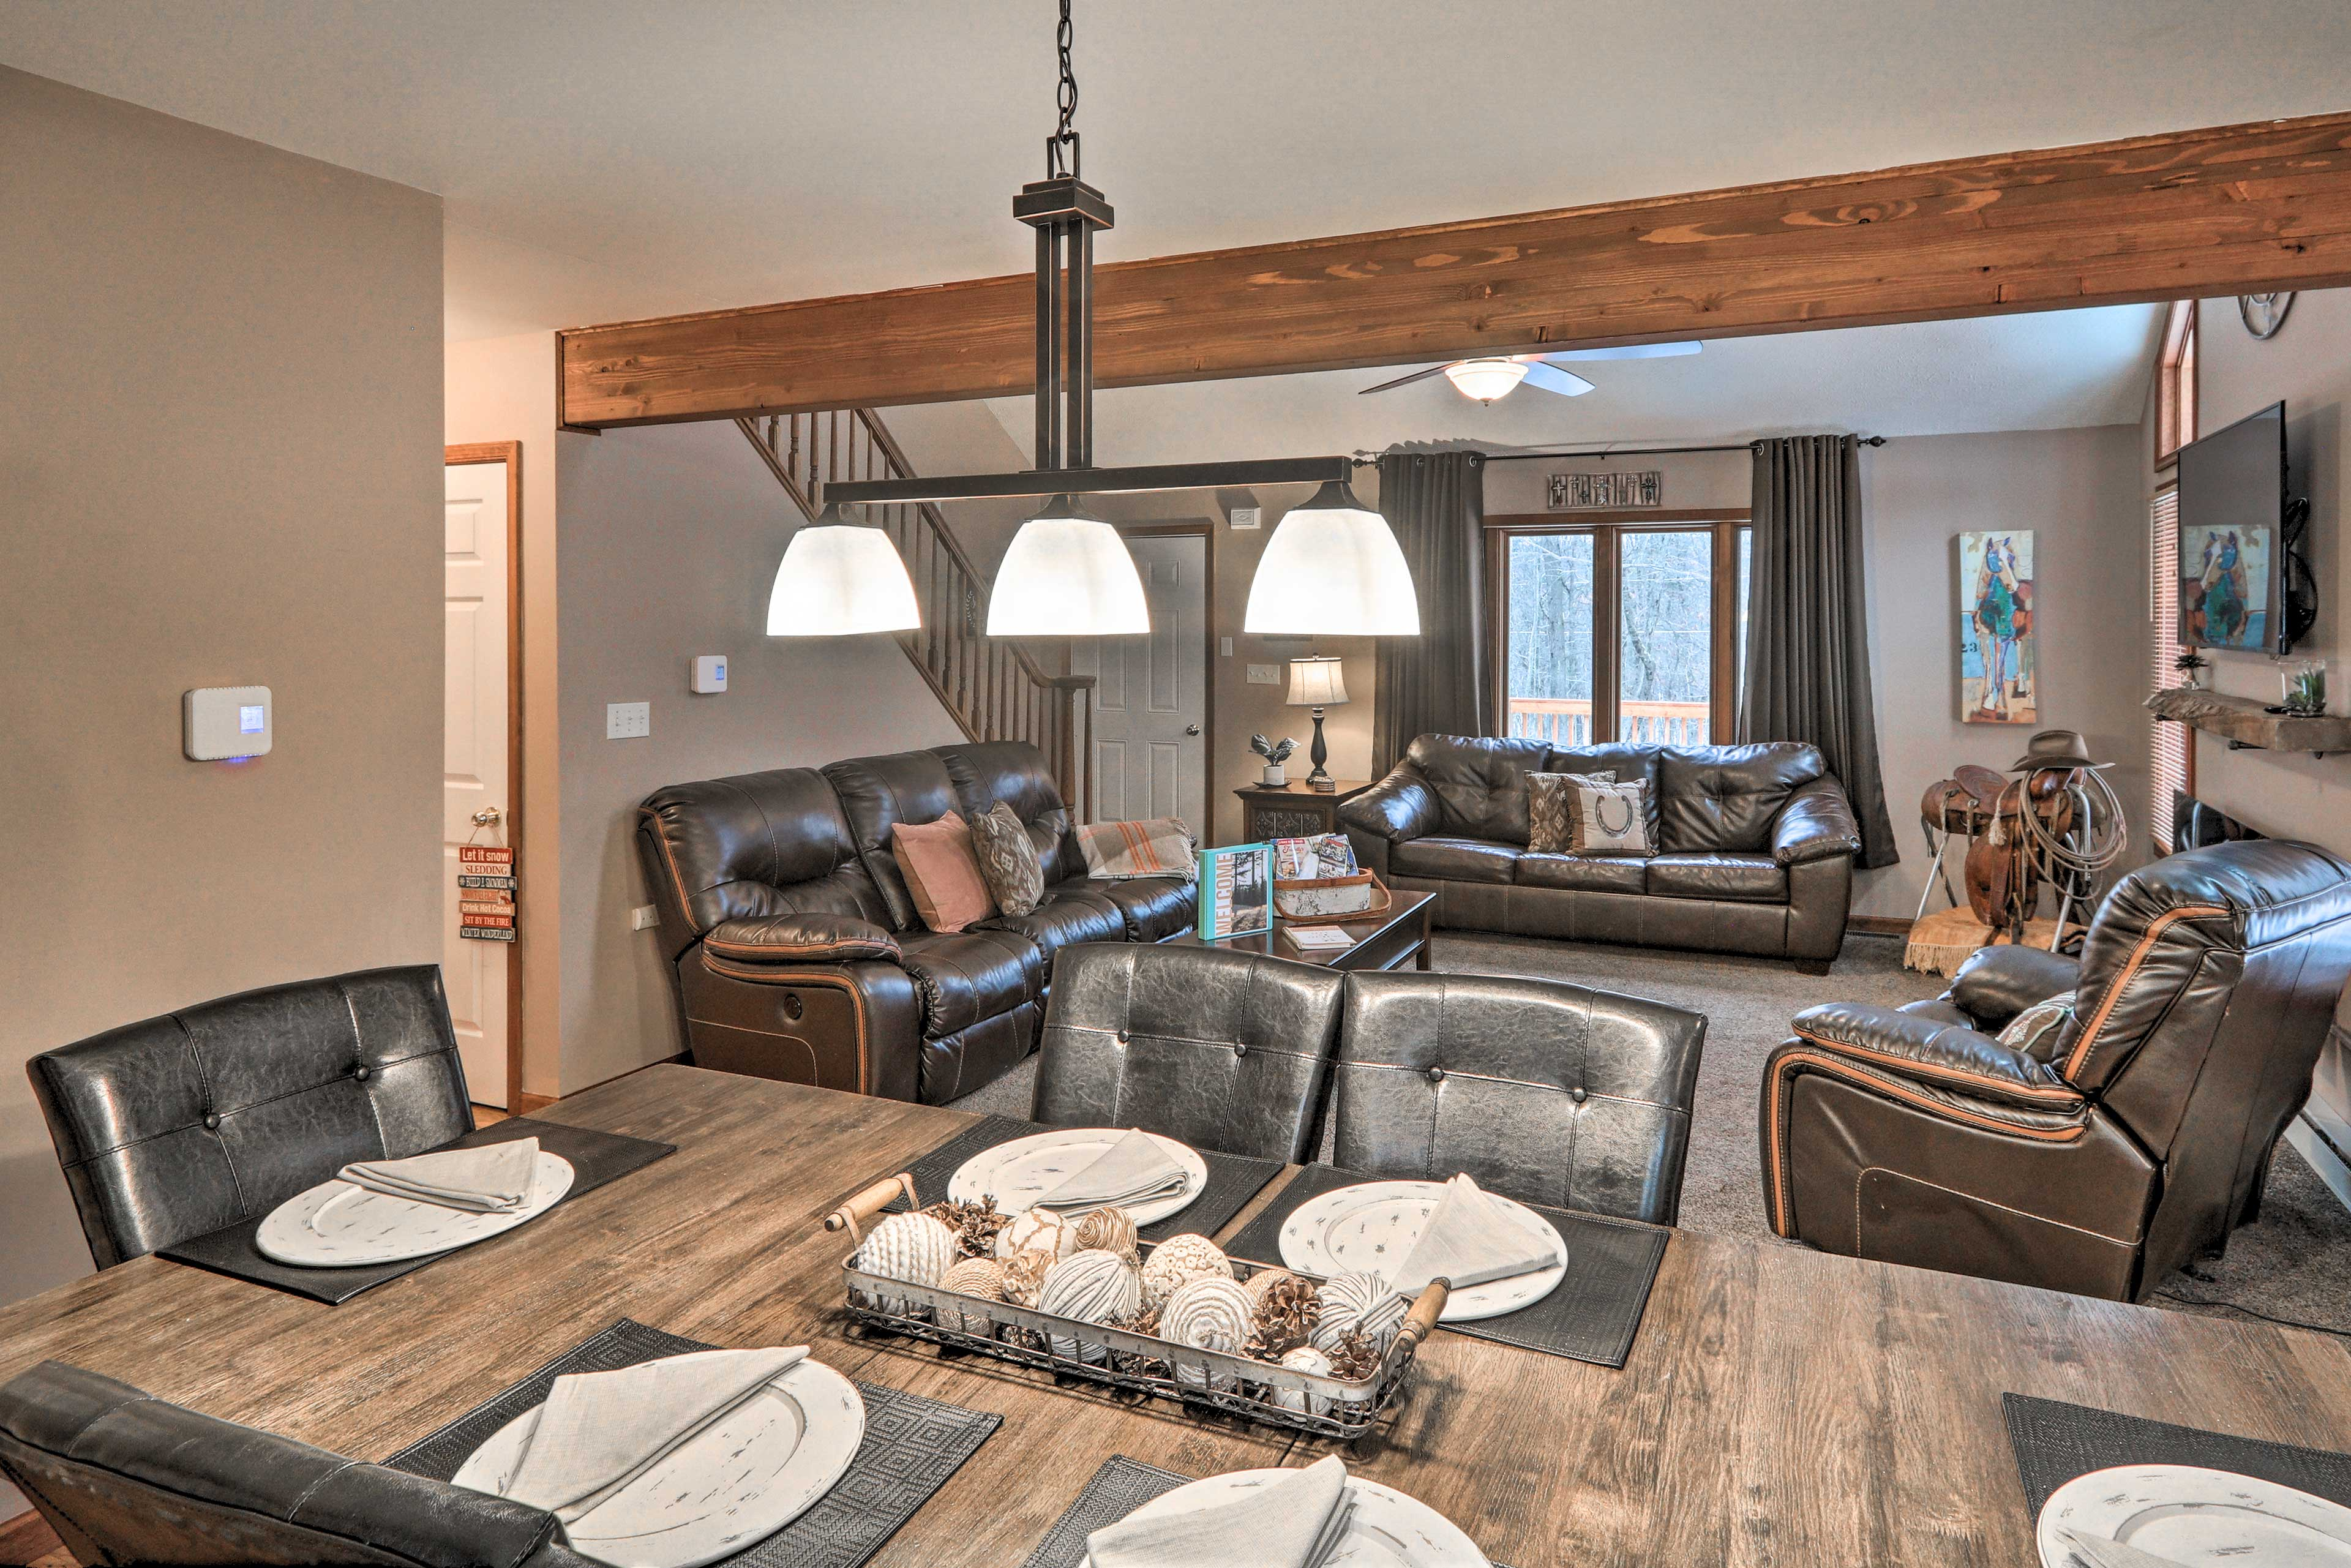 Dining Room   Living Room   Open-Concept Interior   Leather Recliners